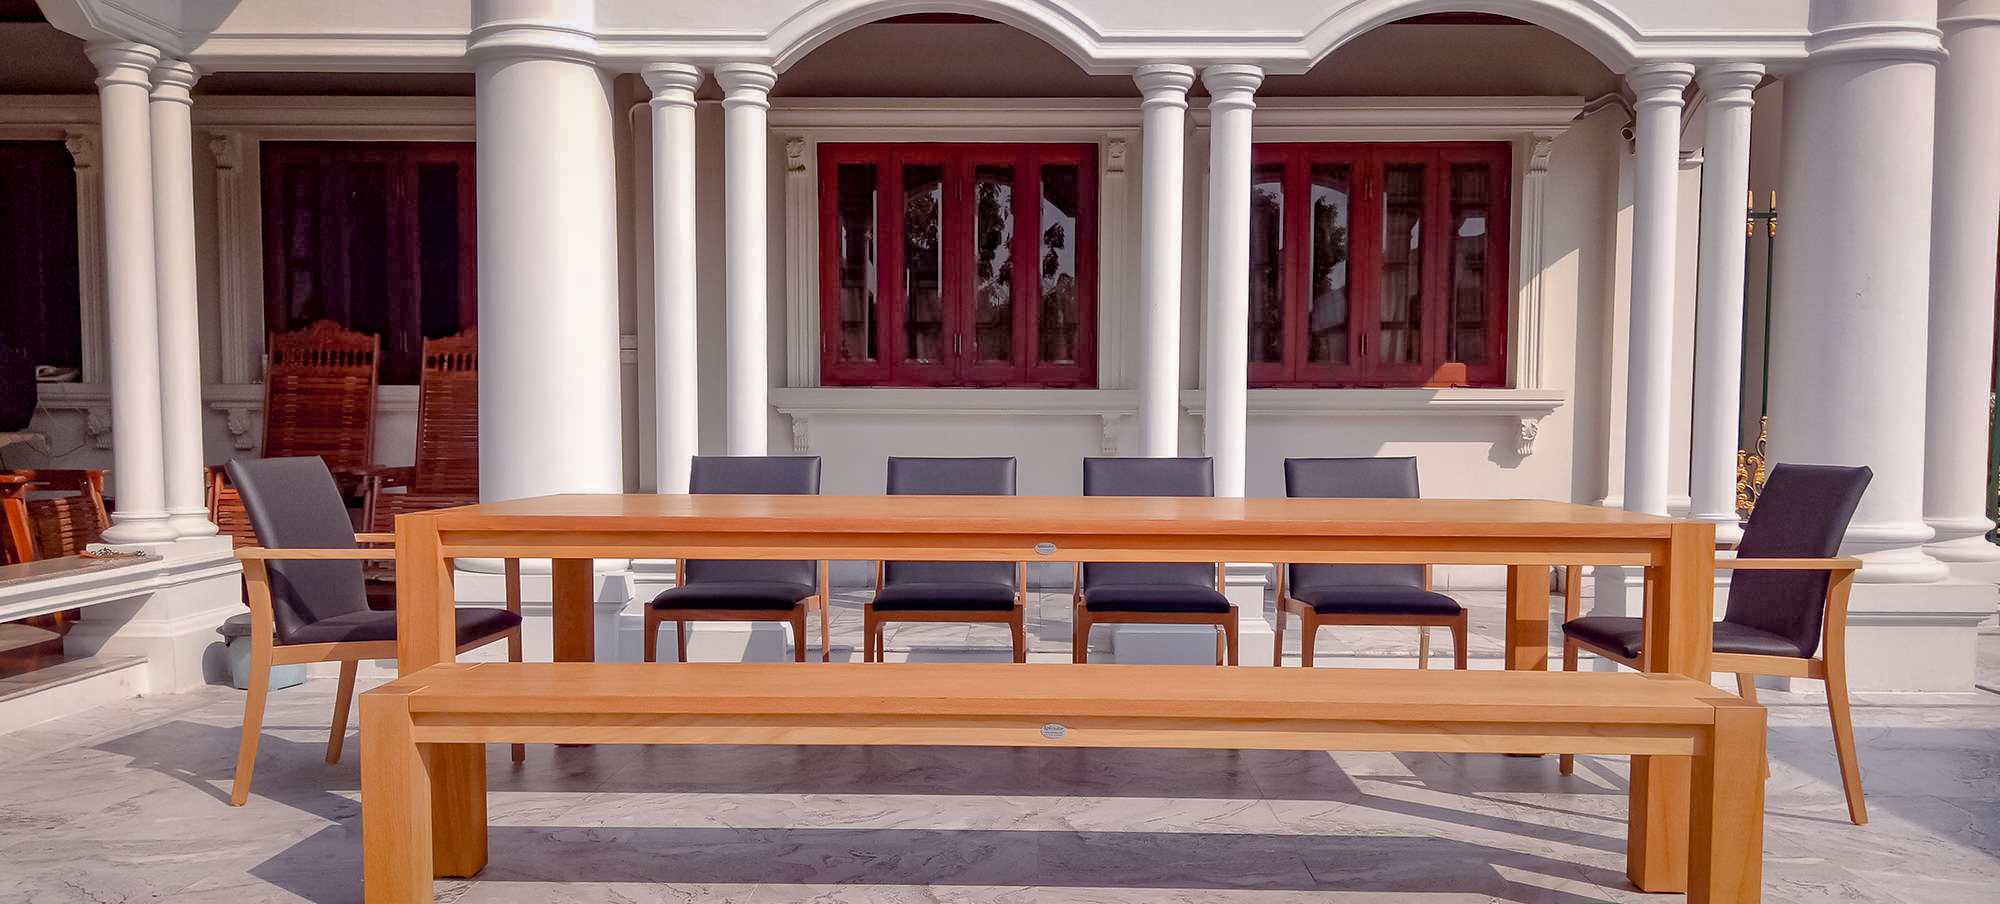 Haven Teak 10 top dininig table with matching chairs and bench copy.jpg